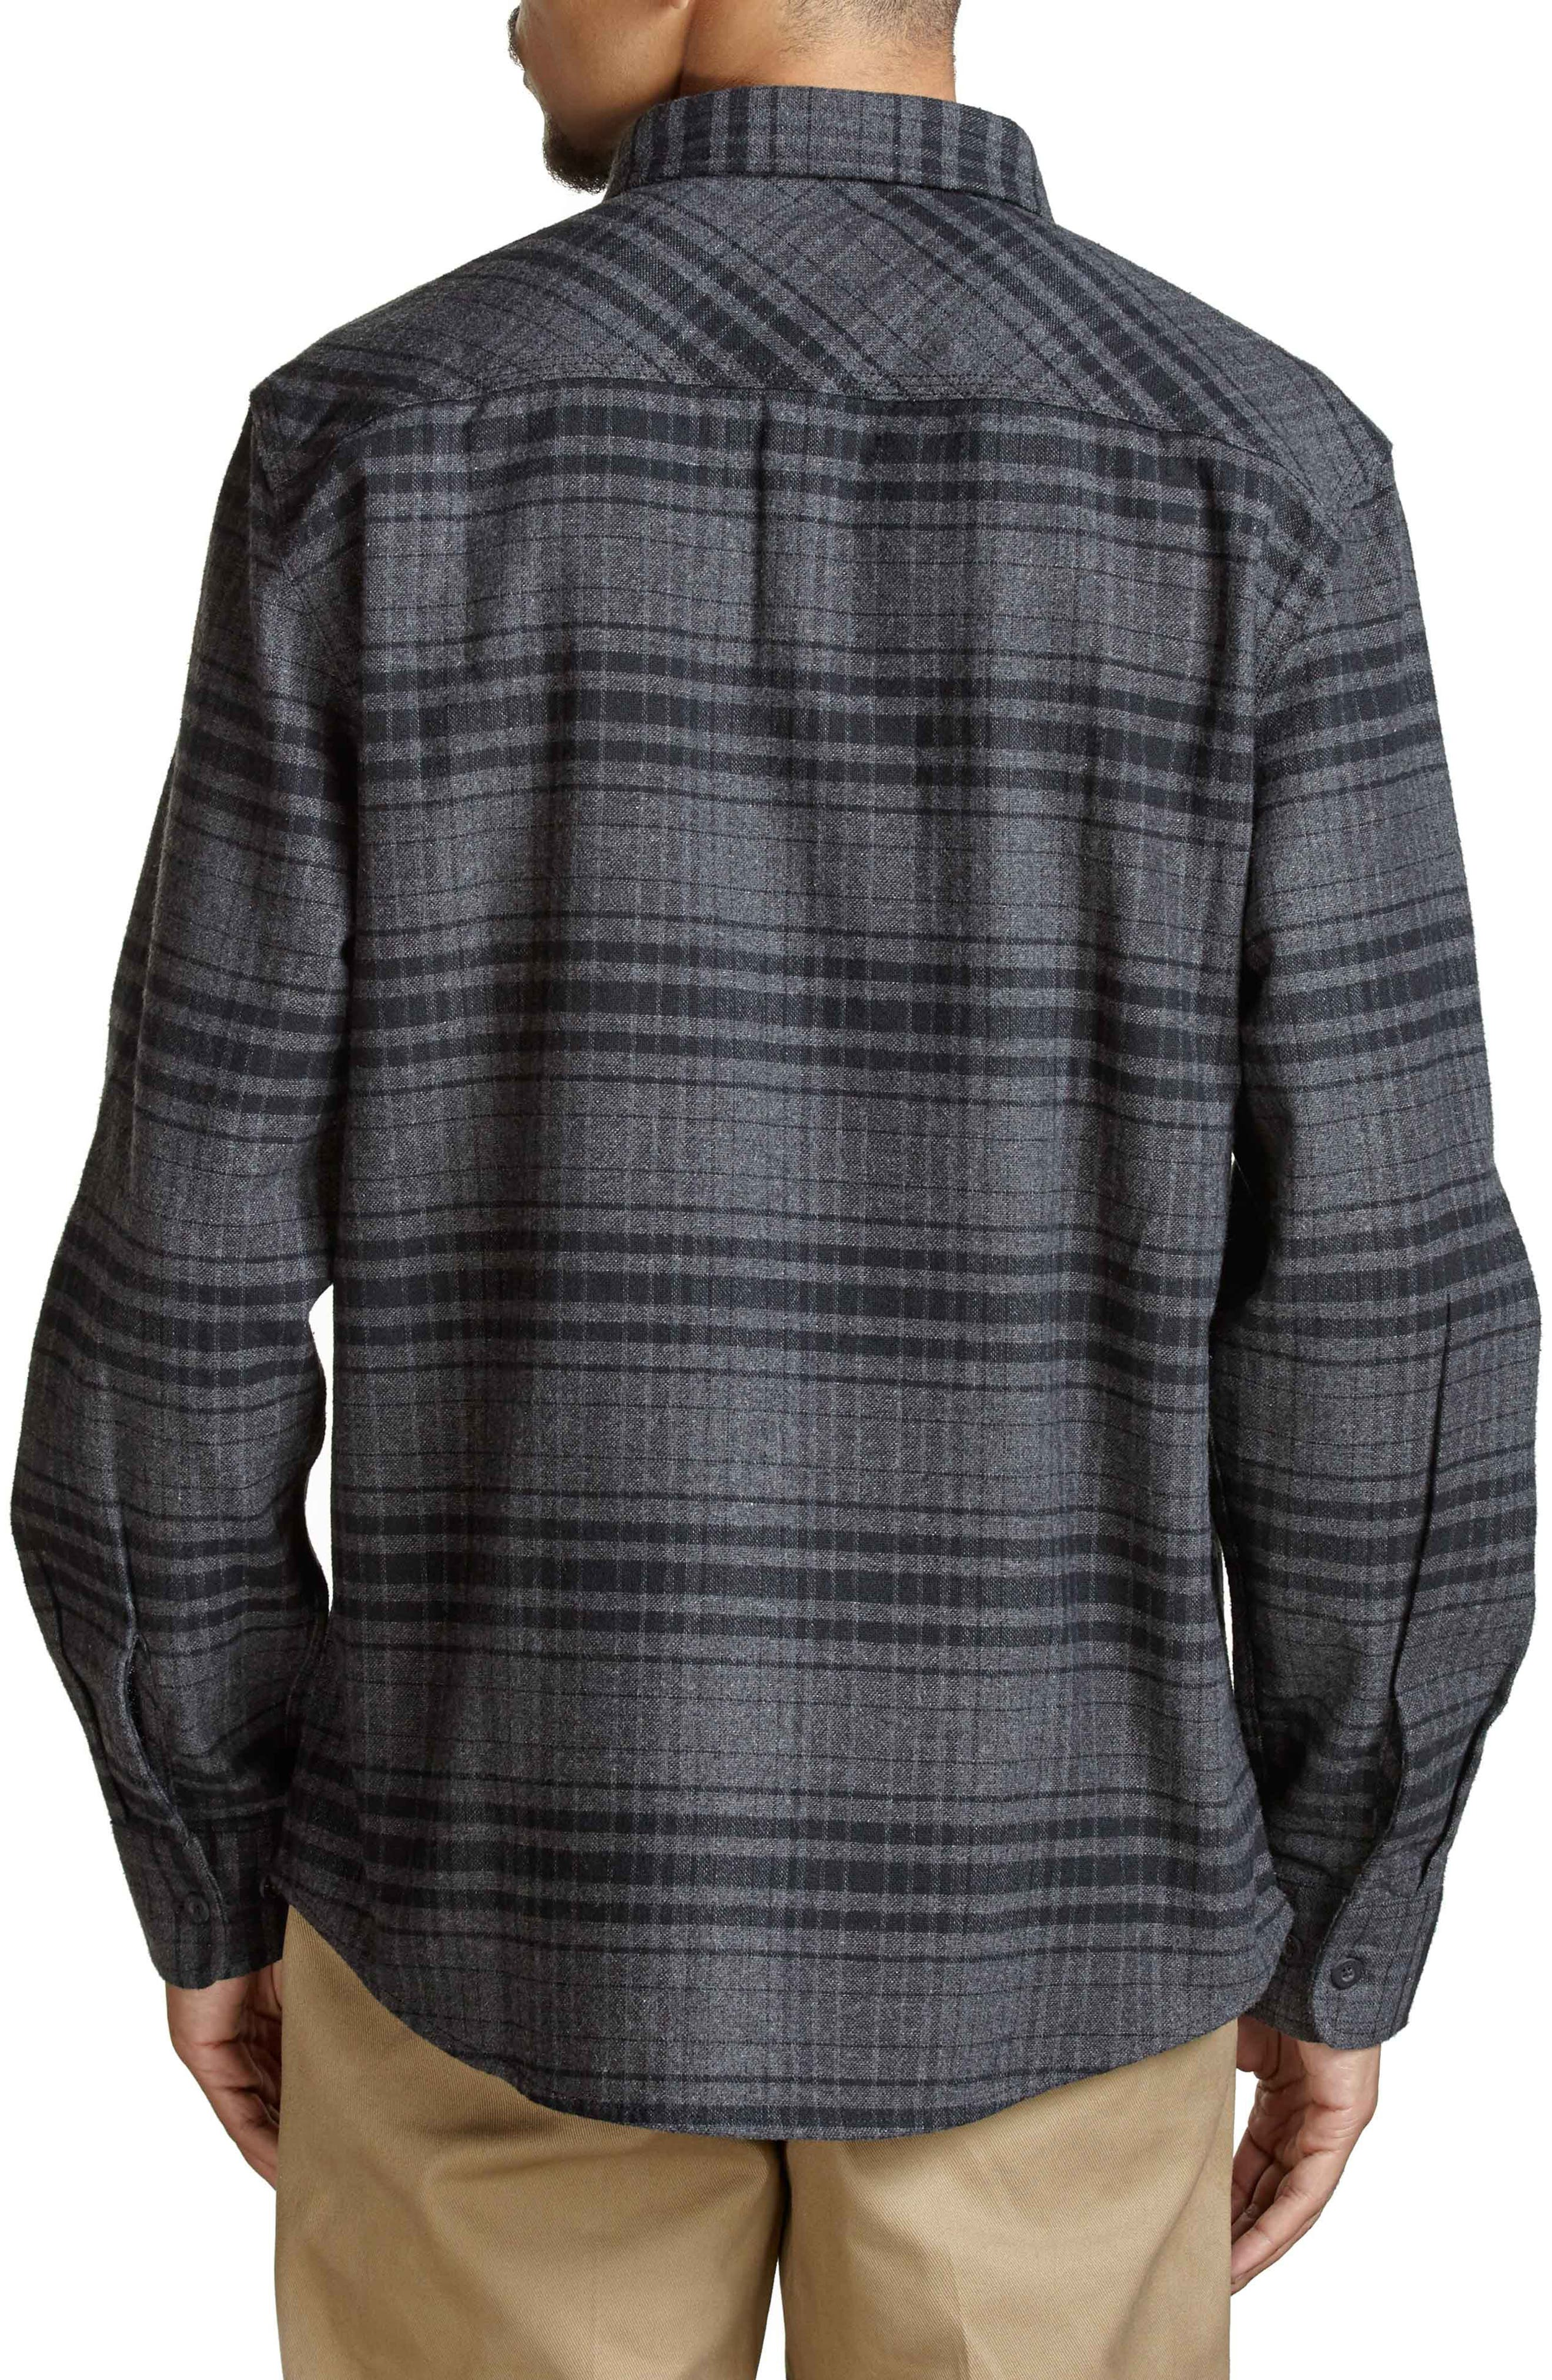 Bowery Flannel Shirt,                             Alternate thumbnail 16, color,